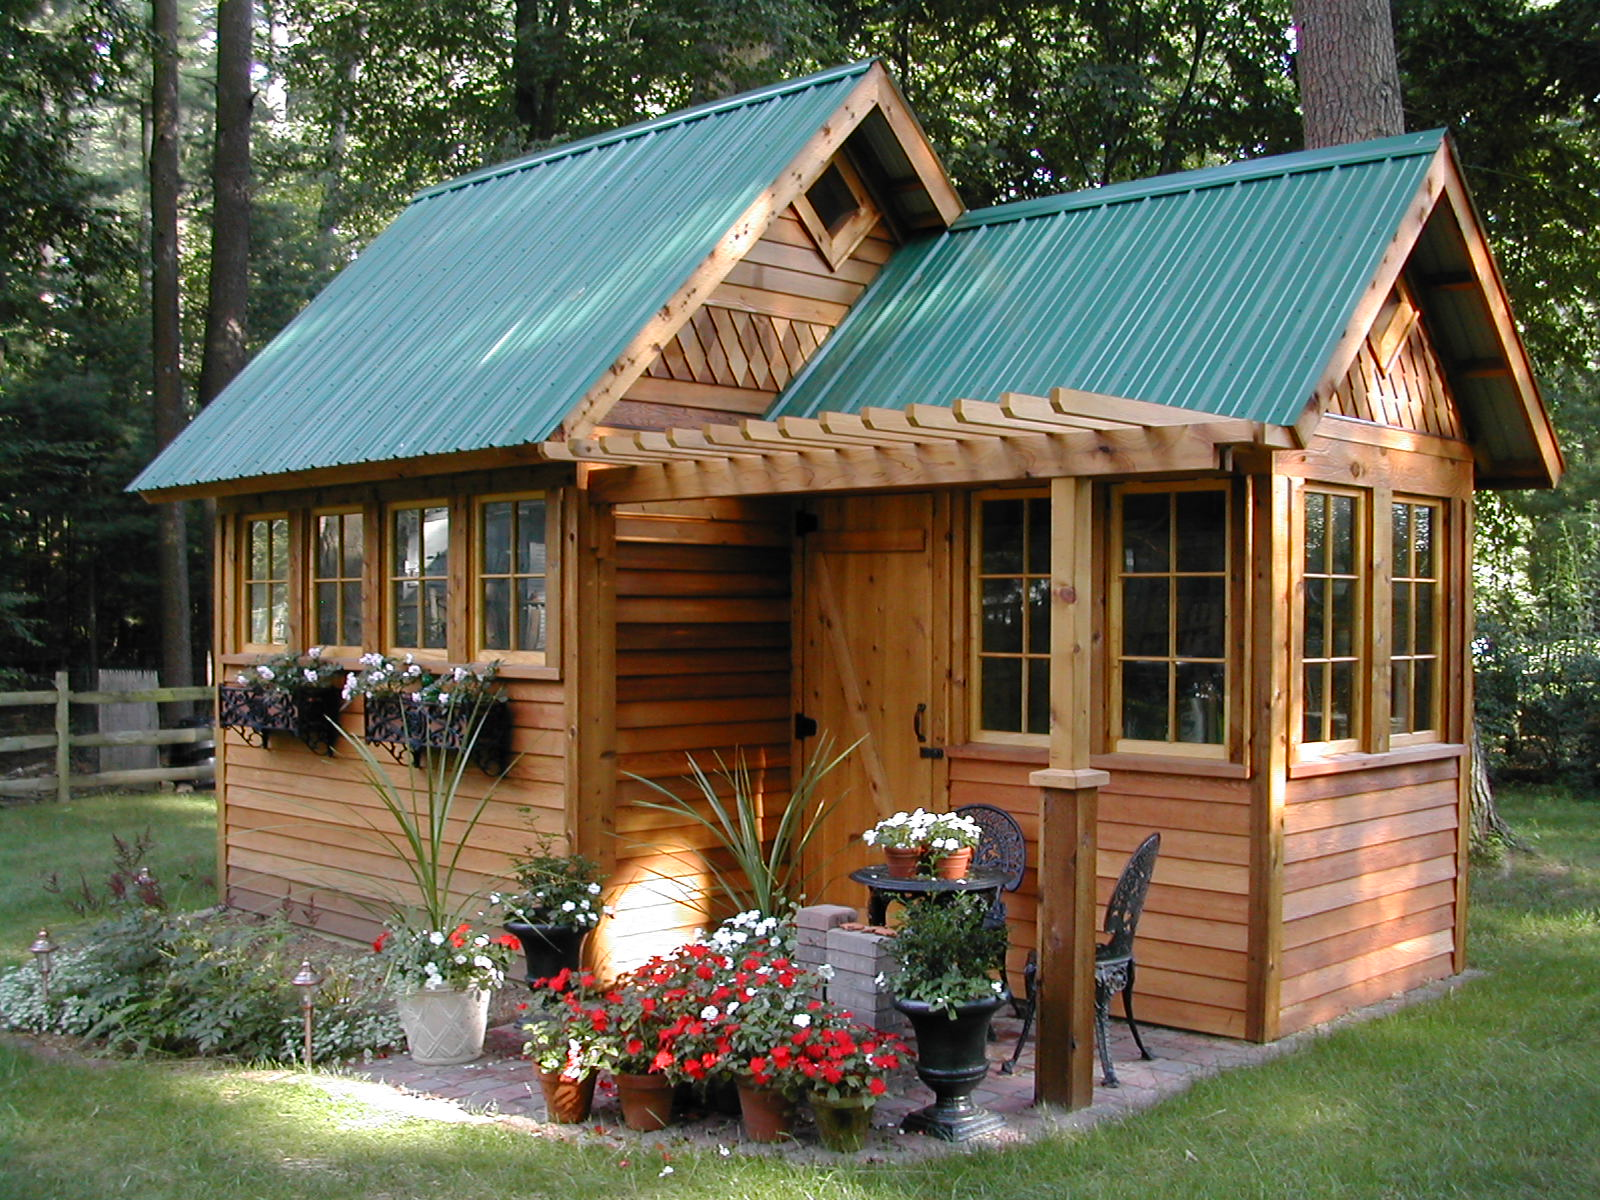 Who Says Building a Garden Shed Can't Be Fun? Some Ideas and Steps ...